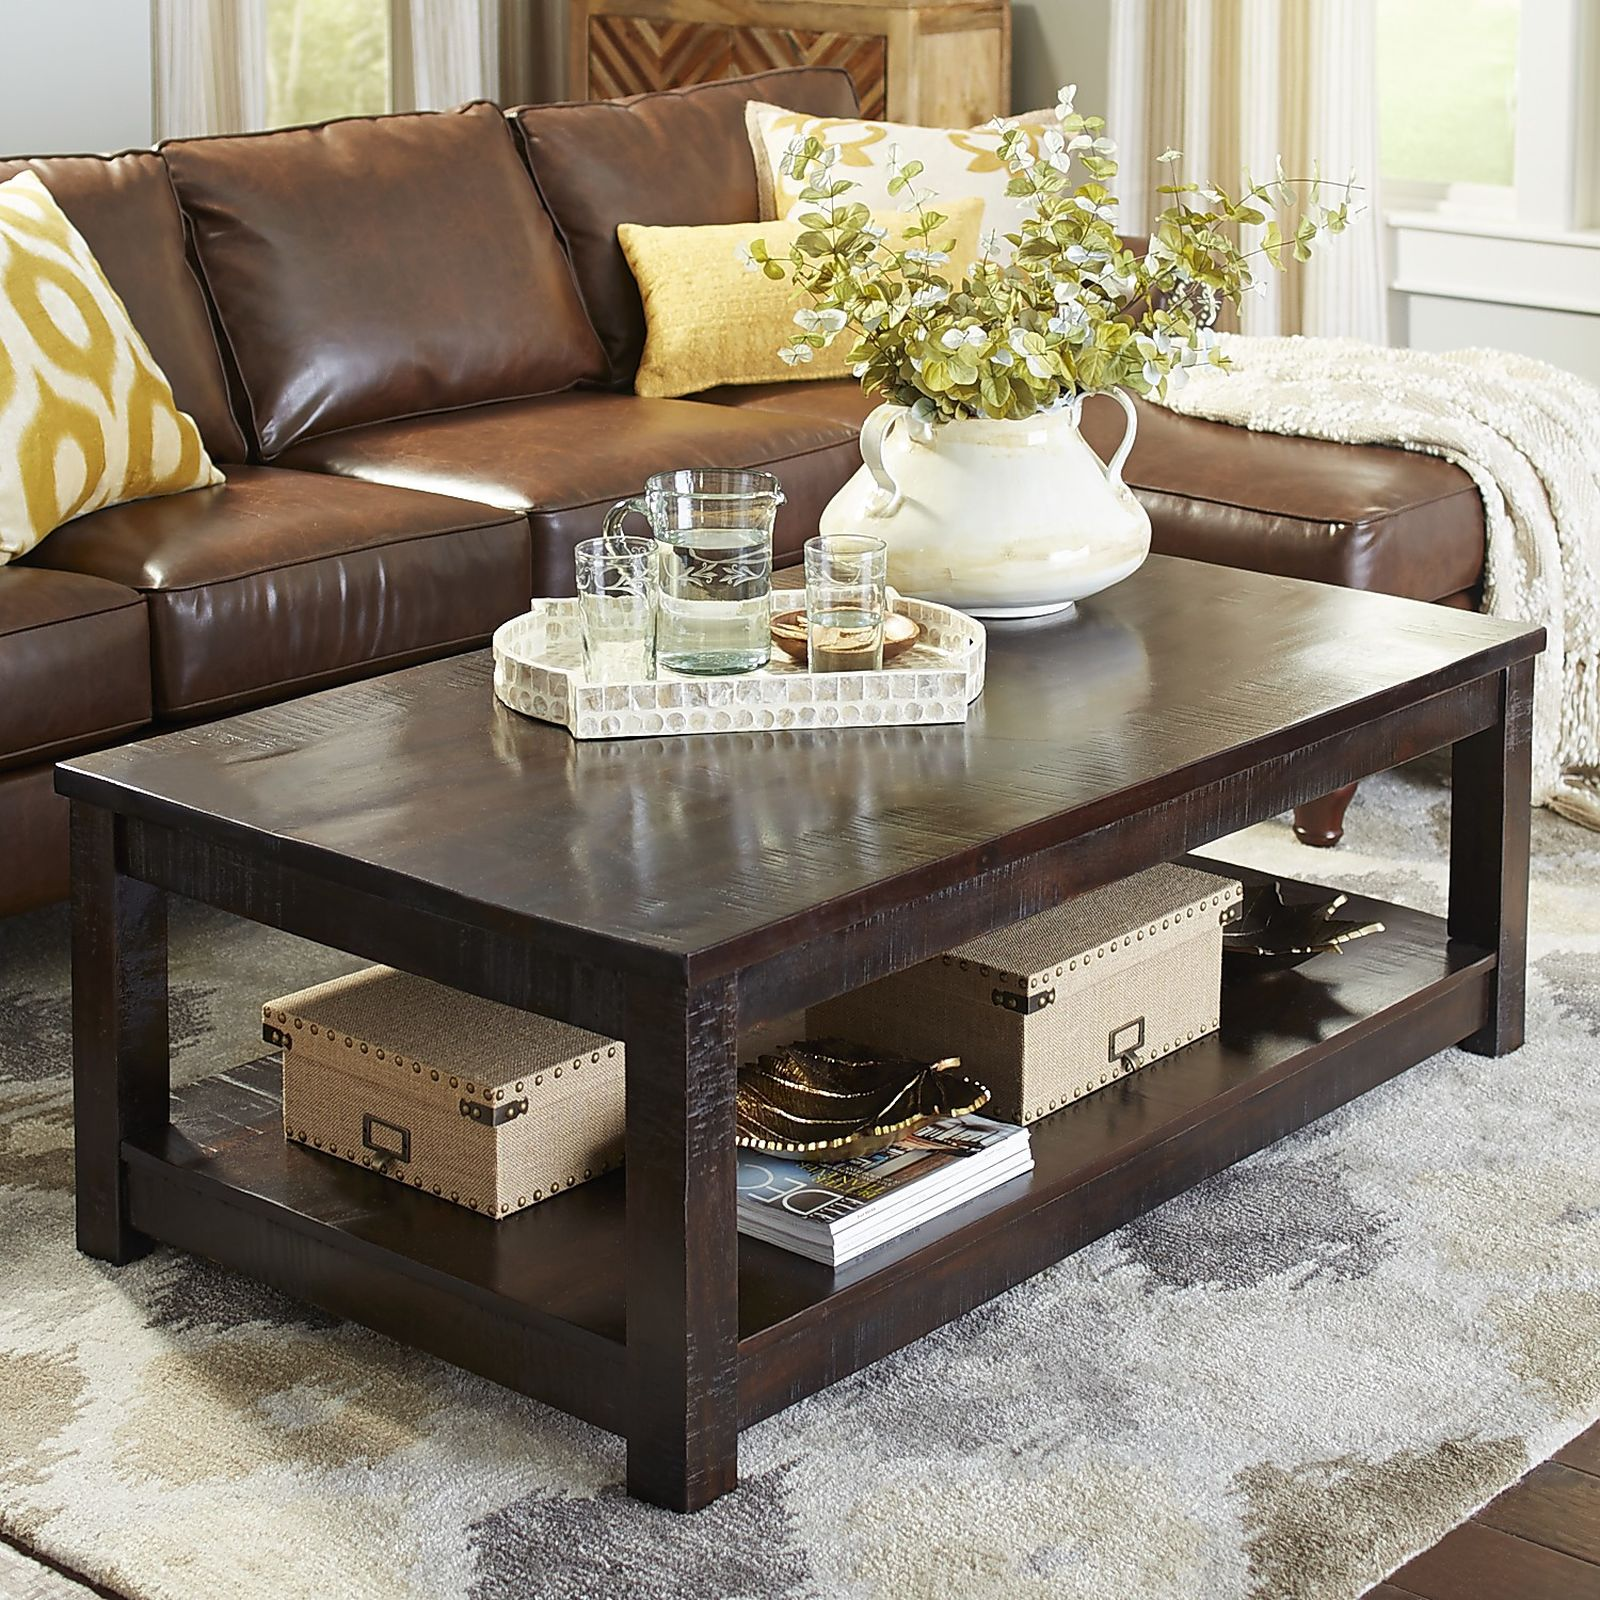 coffee table furniture accent tables lovely end pier parsons large tobacco brown imports centerpieces decor one sets chest base trunk tray and full size high console shoe caddy